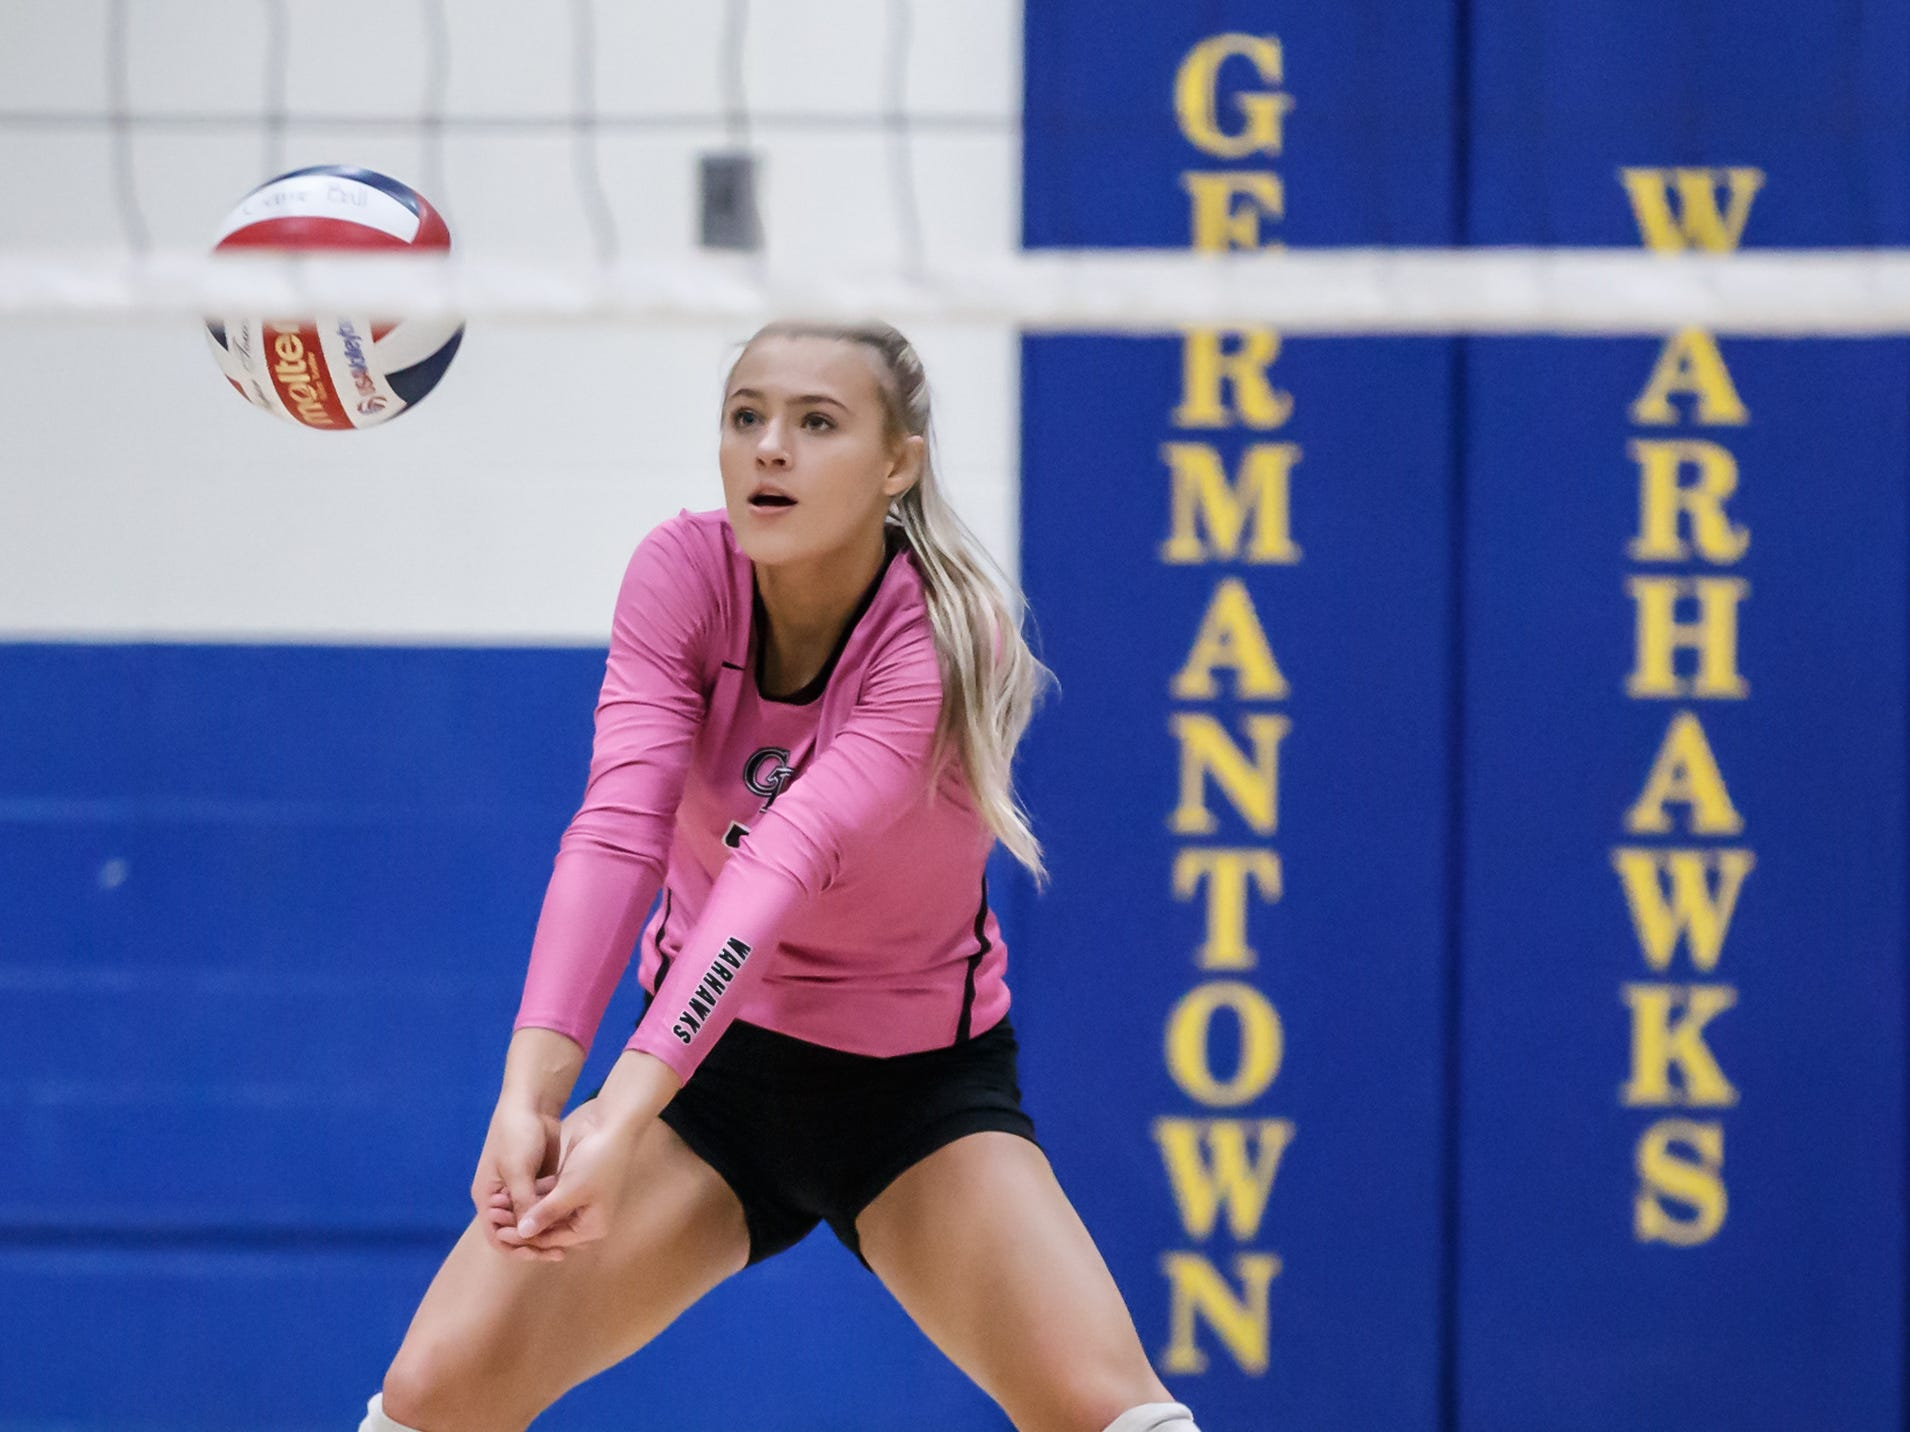 Germantown junior Amber Bischel bumps a serve during the WIAA Regional match at home against Homestead on Thursday, Oct. 18, 2018.